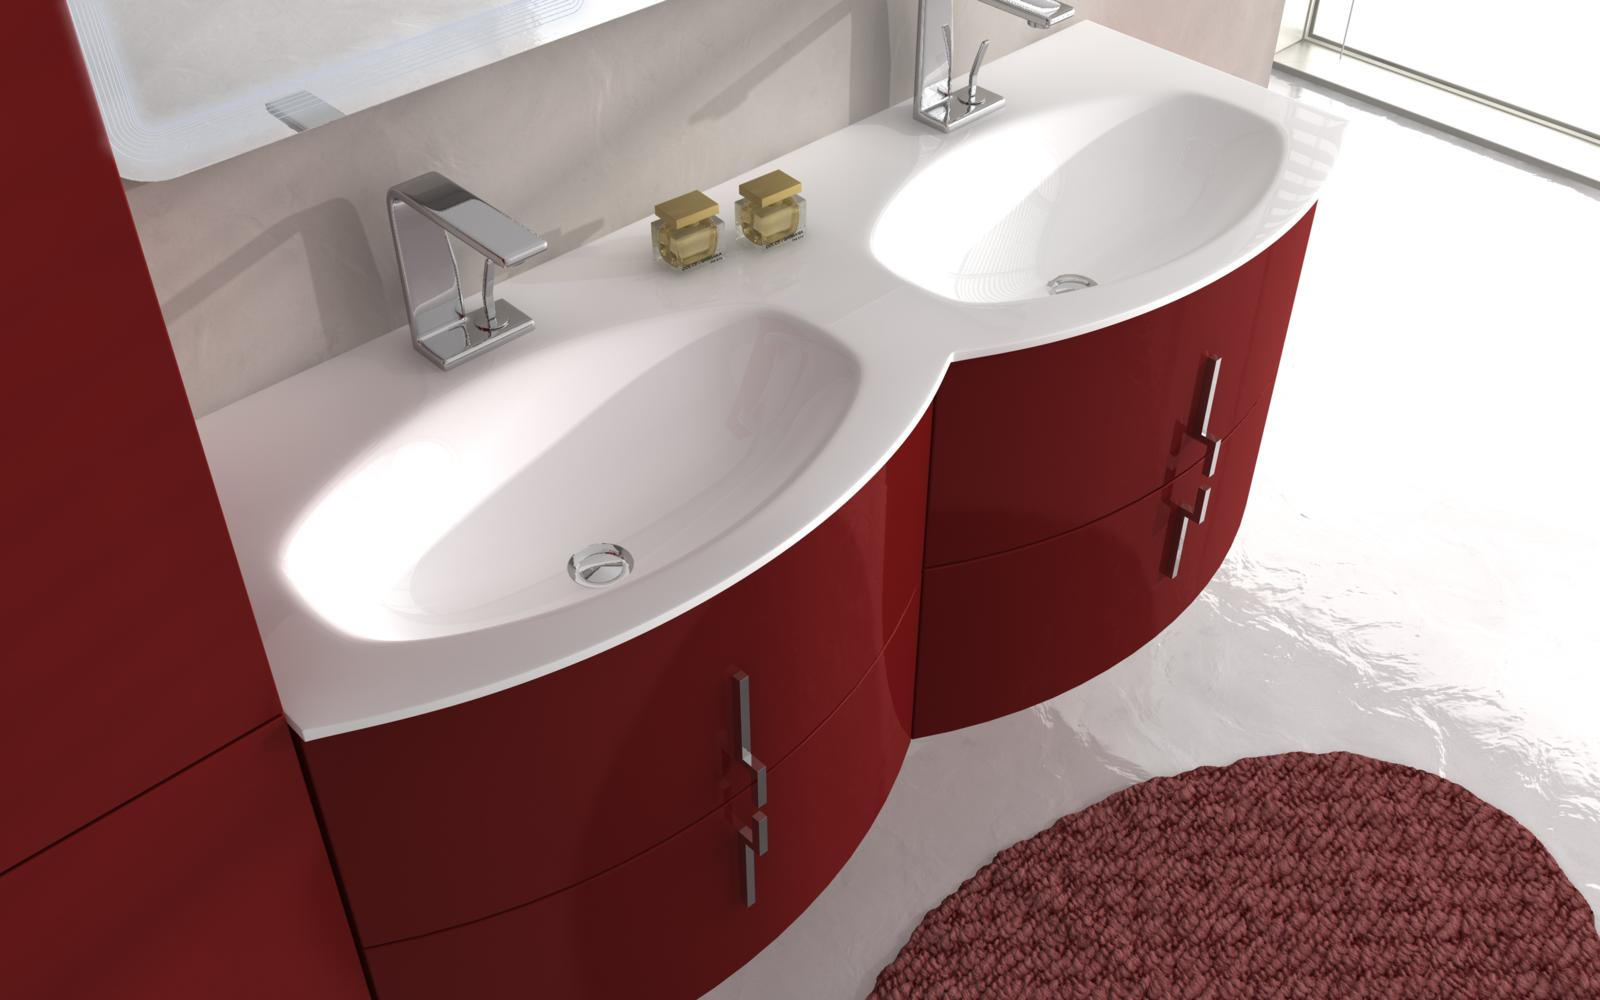 https://www.arredobagnoitalia.com/images/stories/virtuemart/product/mobile_bagno_stiven-134_n.1.jpg